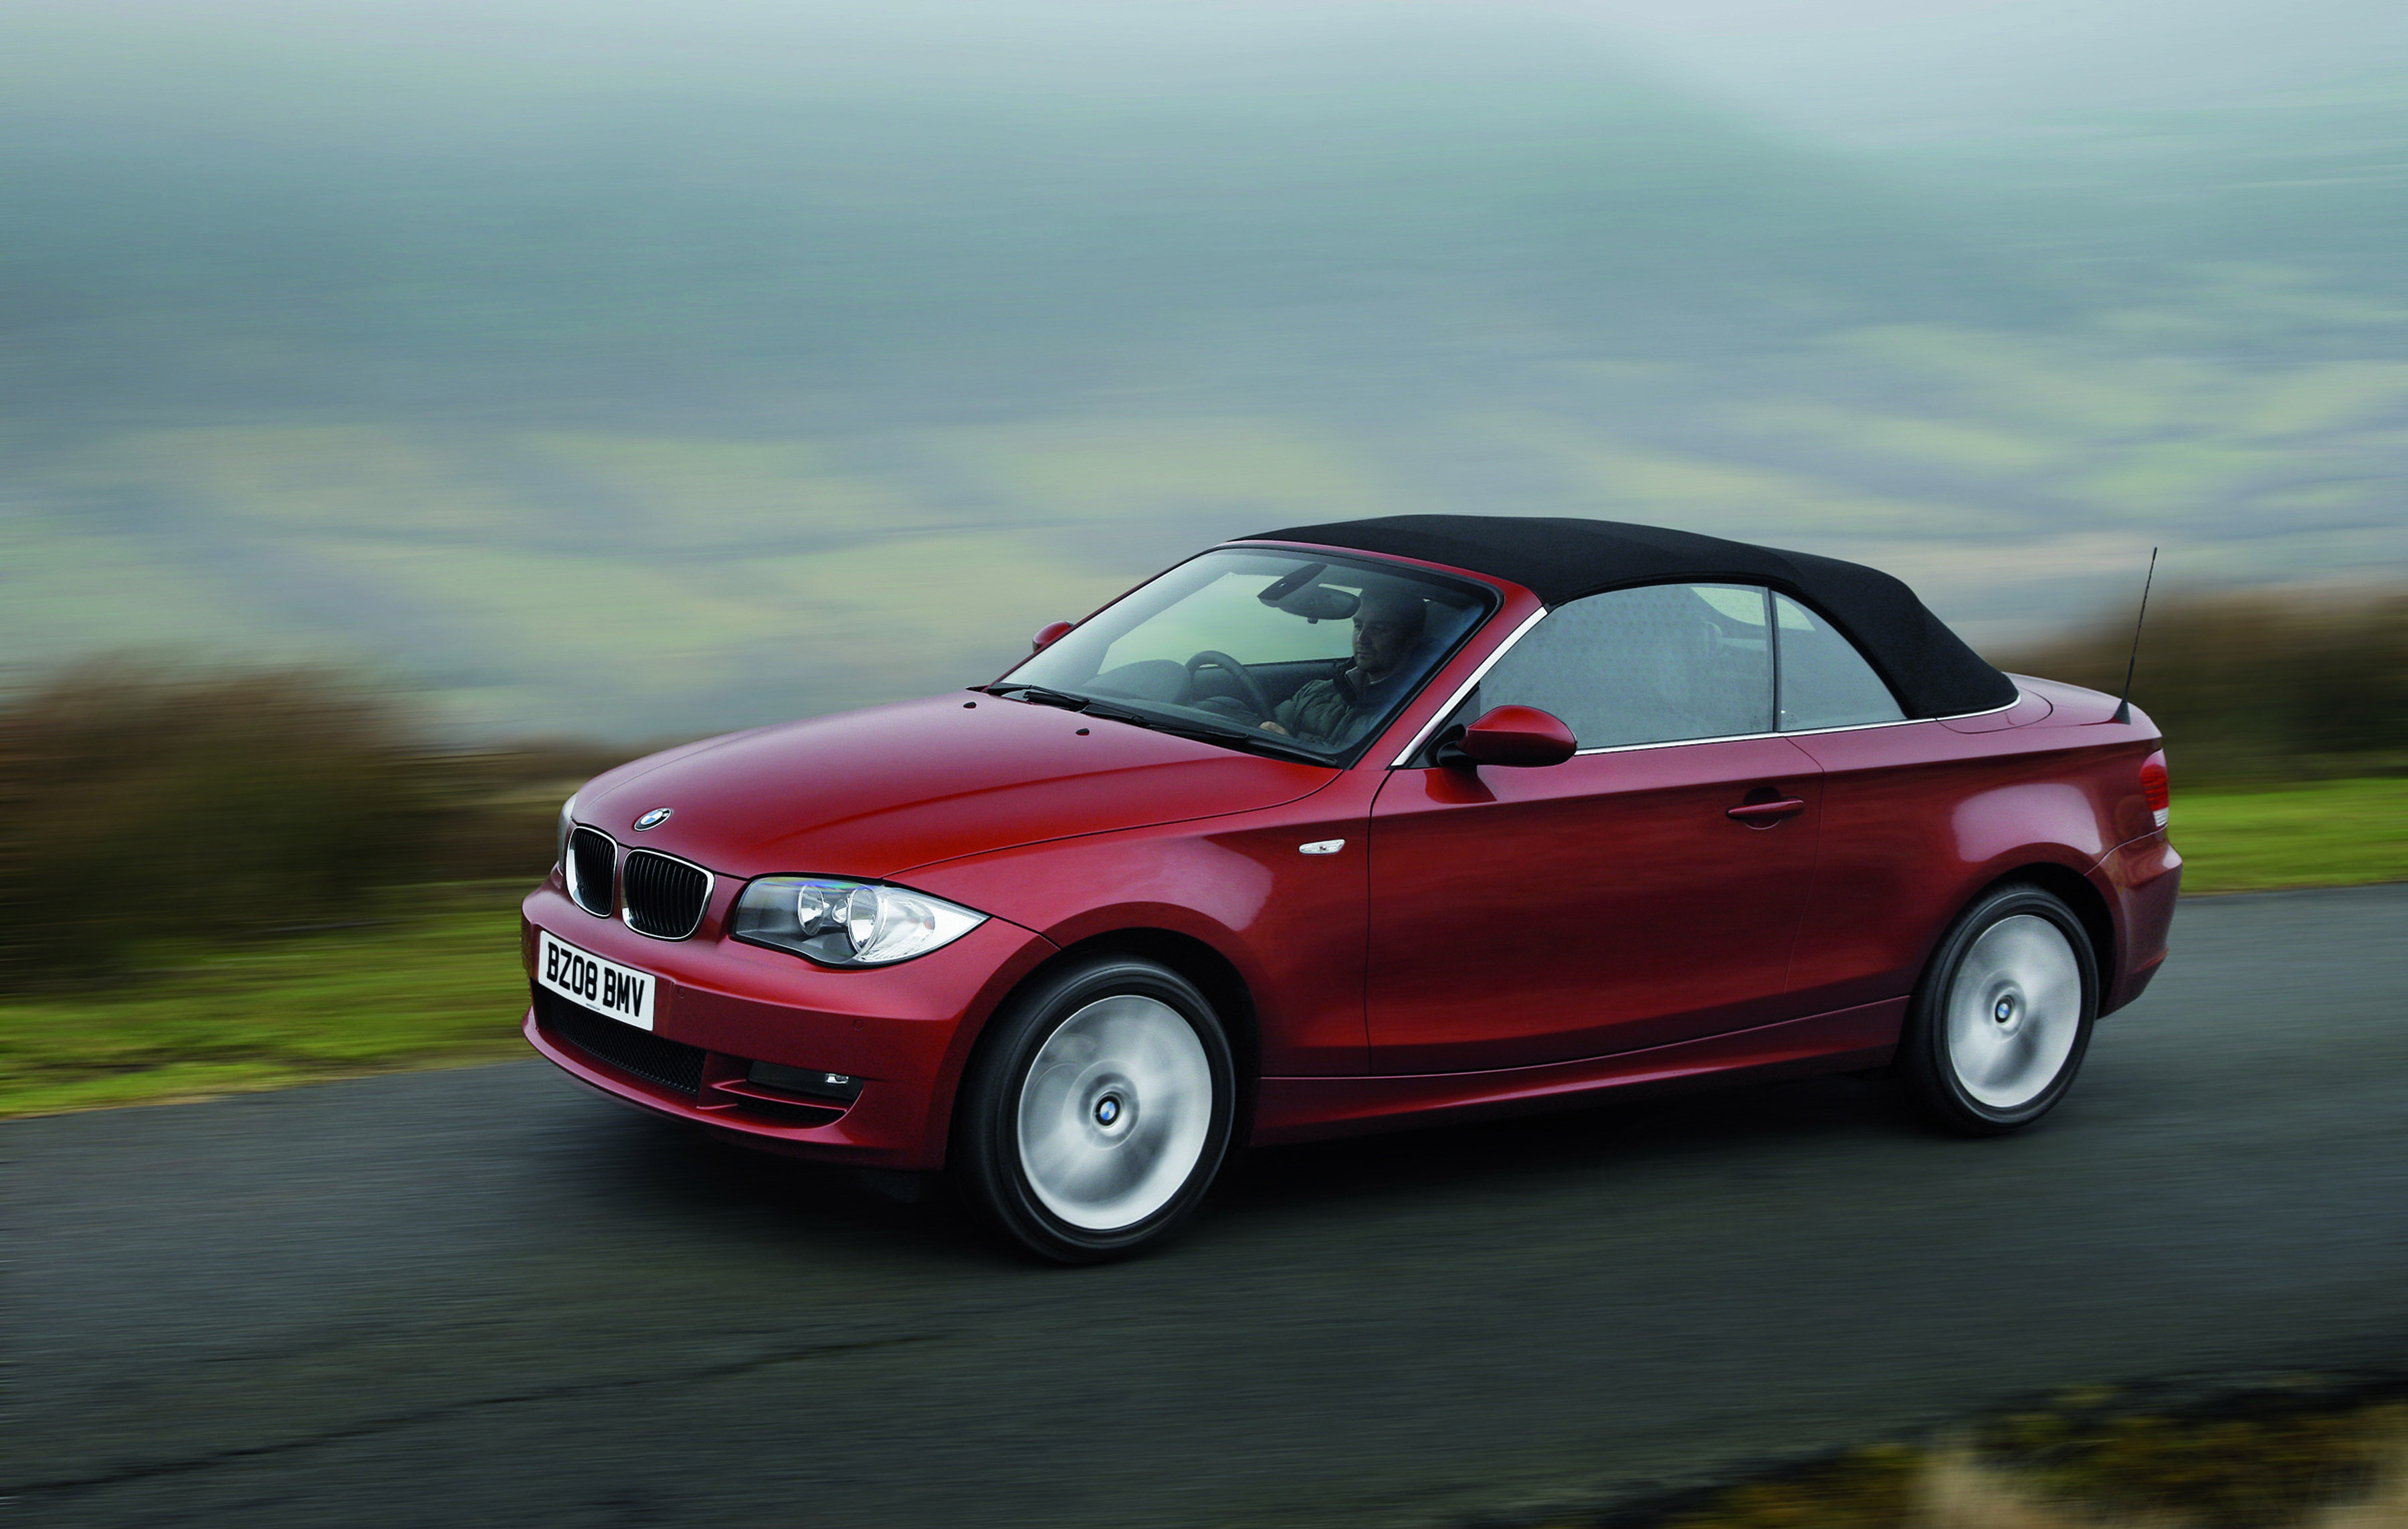 2008 BMW 1 Series Convertible - Picture 39028